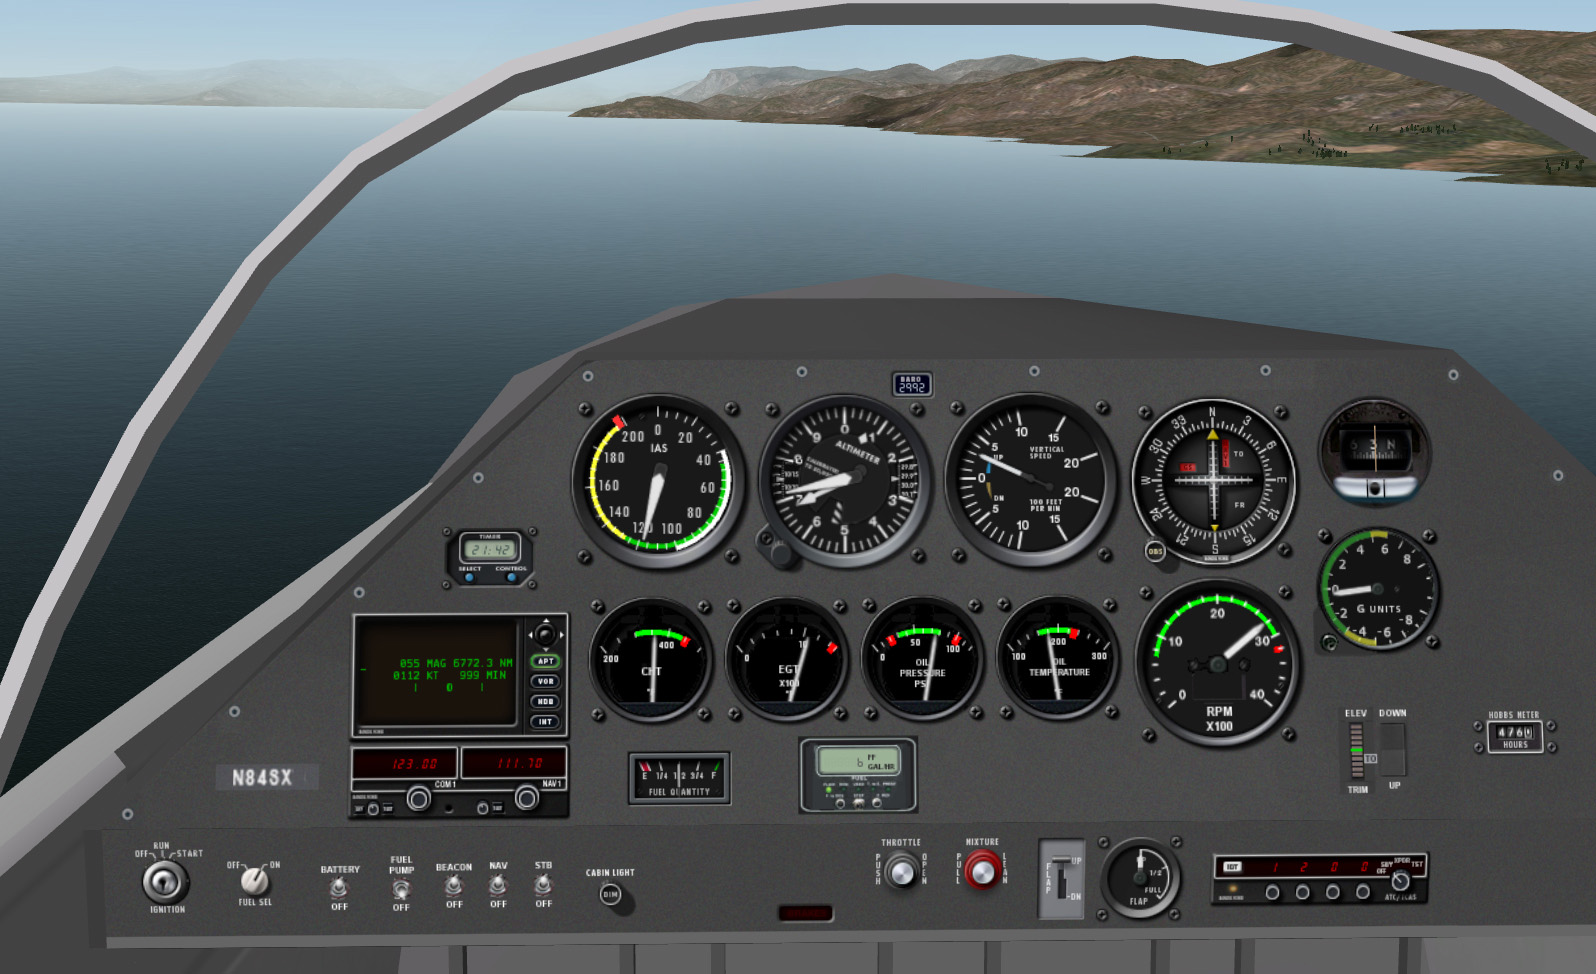 X-Plane - Sonex Airplane, instrument panel